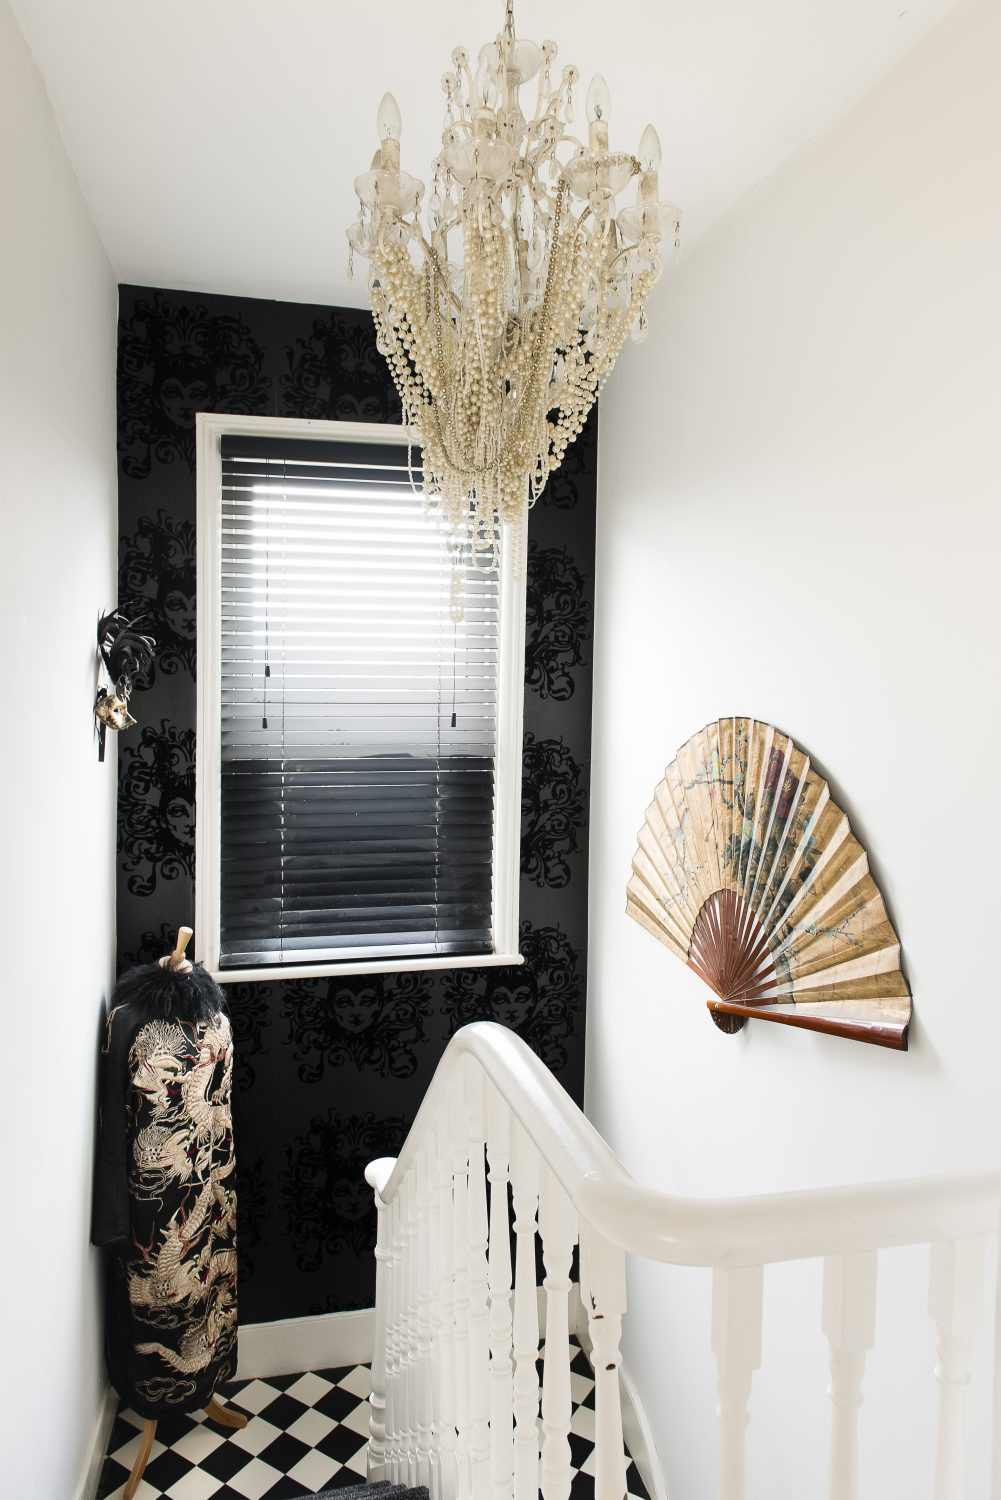 The wallpaper on the half landing was designed by Barbara Hulanicki of Biba fame. Sarah draped the chandelier with strings of pearls Above right: The landing houses her collection of glamorous make up, set off by feathers and black flowers